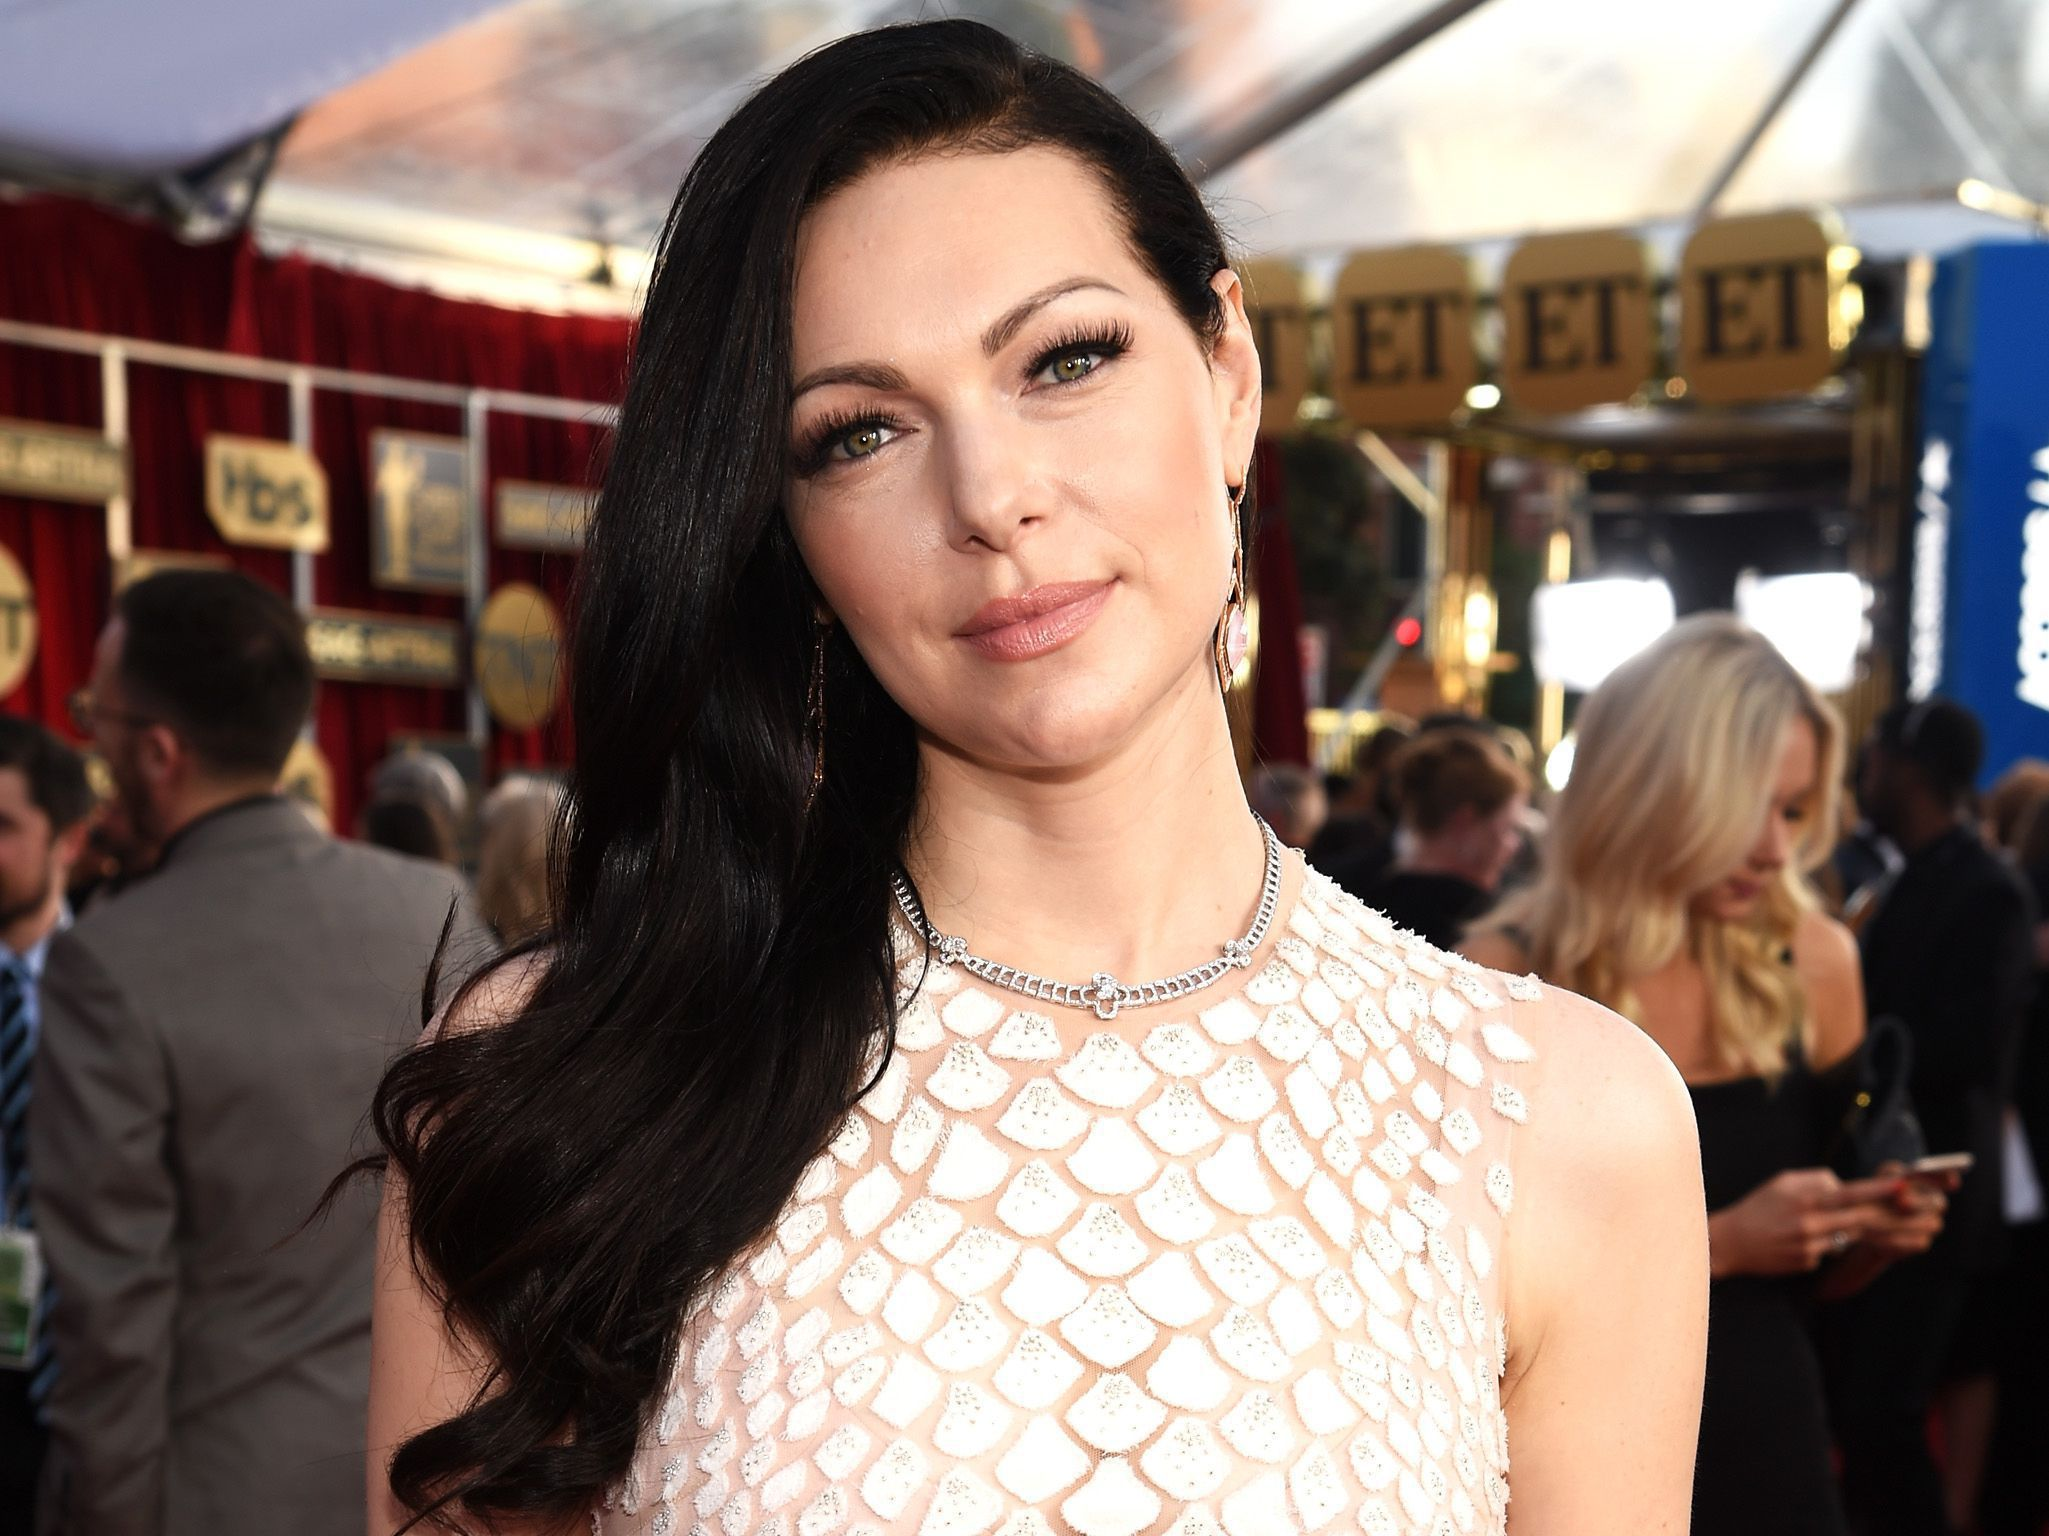 laura prepon wallpapers images photos pictures backgrounds